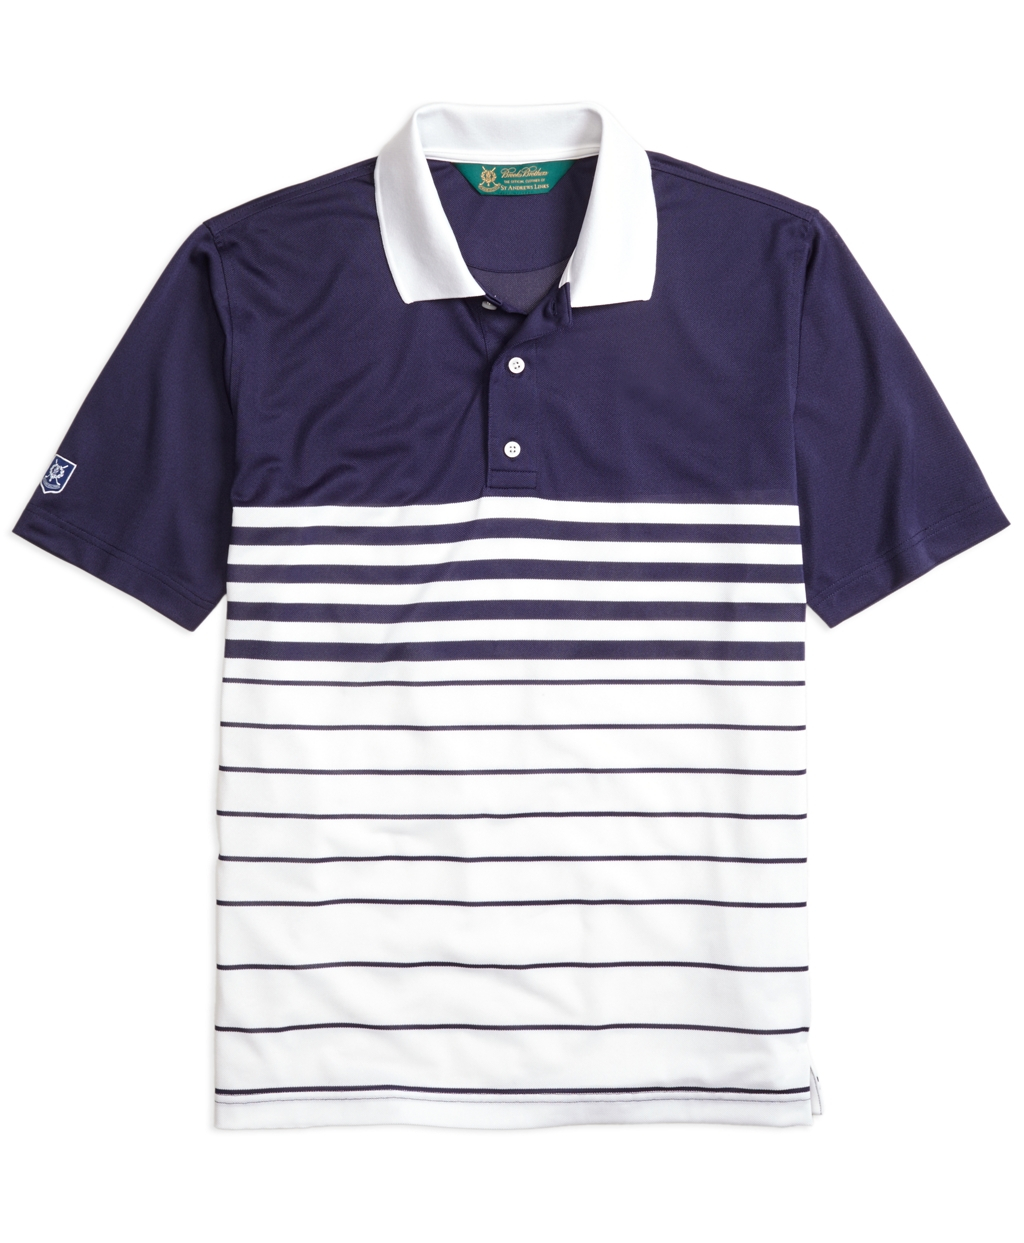 6b9ac726 Brooks Brothers St. Andrews Links Fade Stripe Golf Polo Shirt in ...